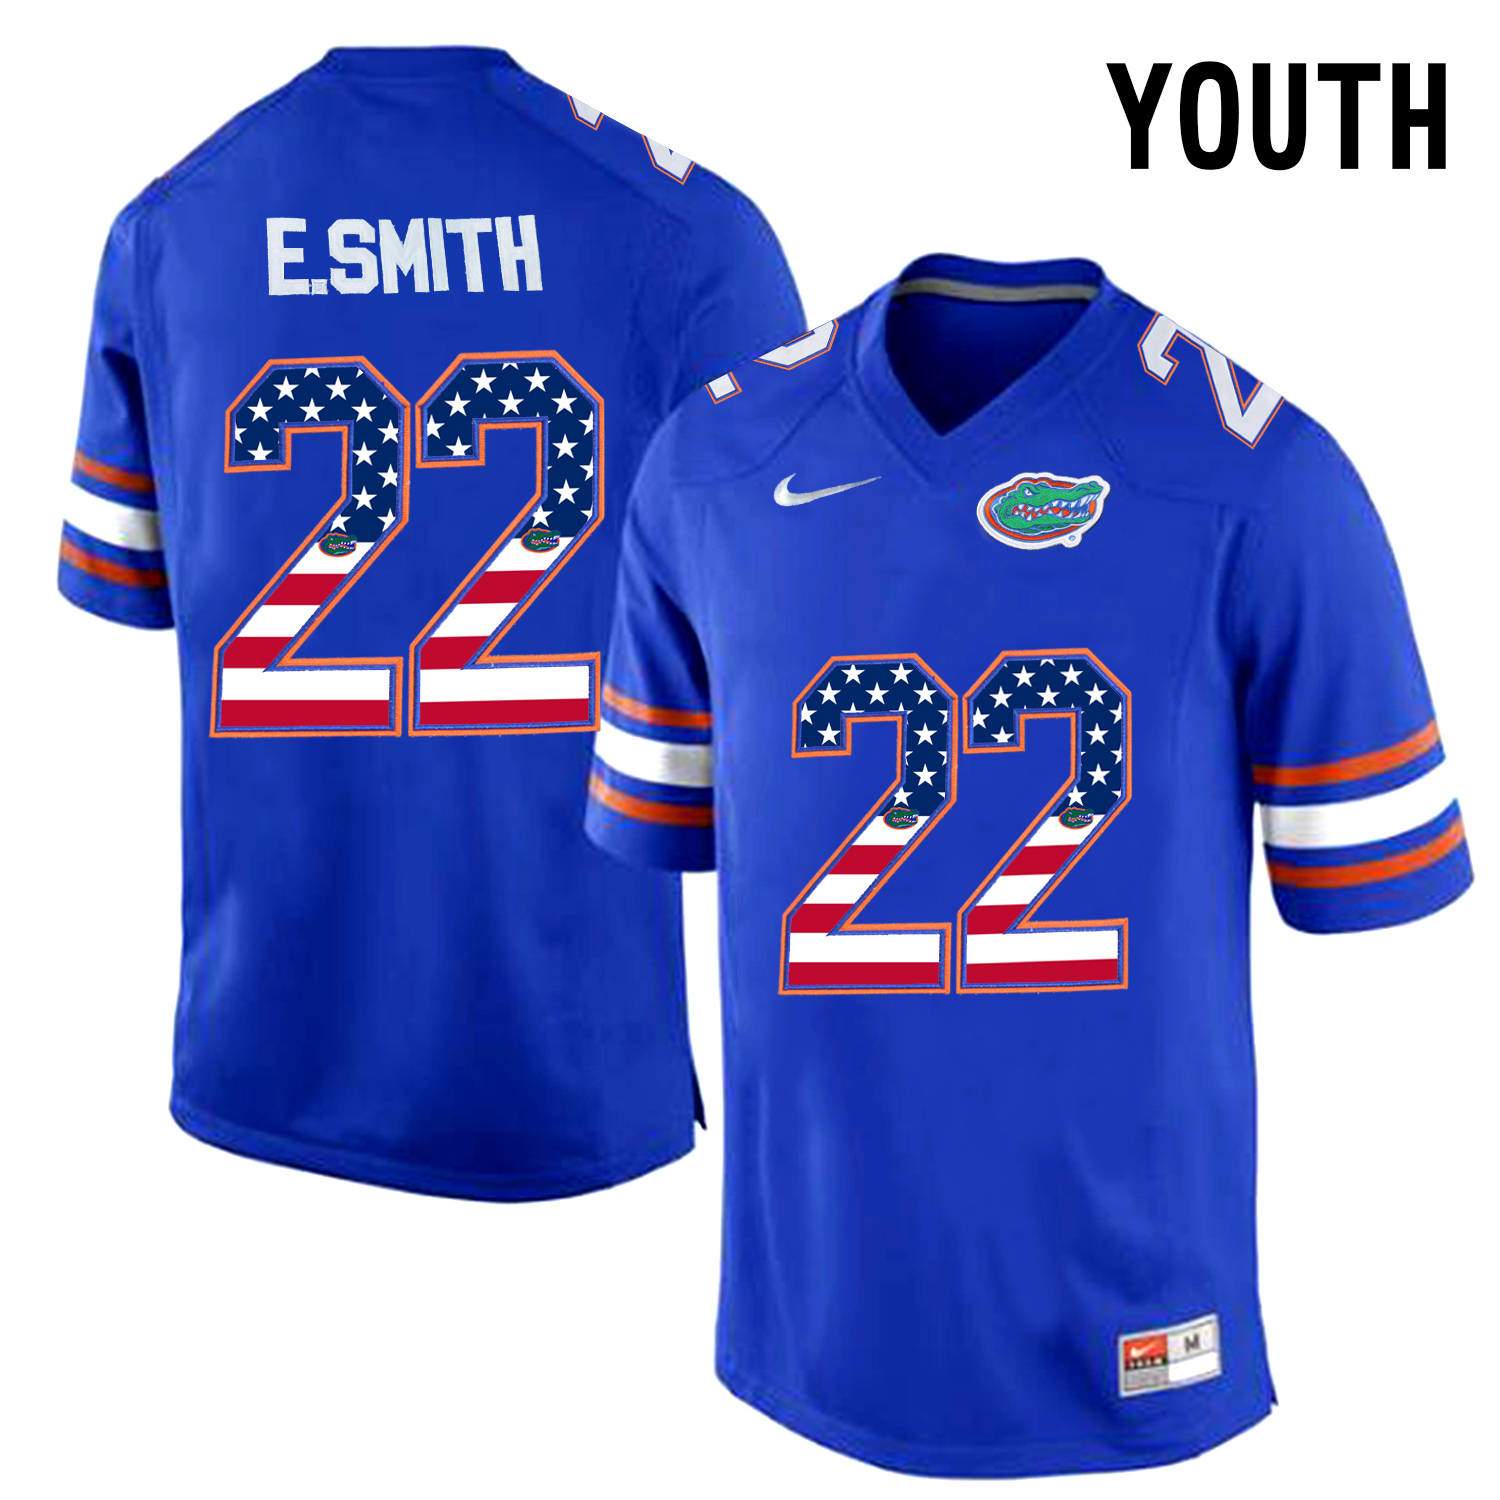 2016 US Flag Fashion Youth Florida Gators Tim Tebow 15 College Football Jersey White